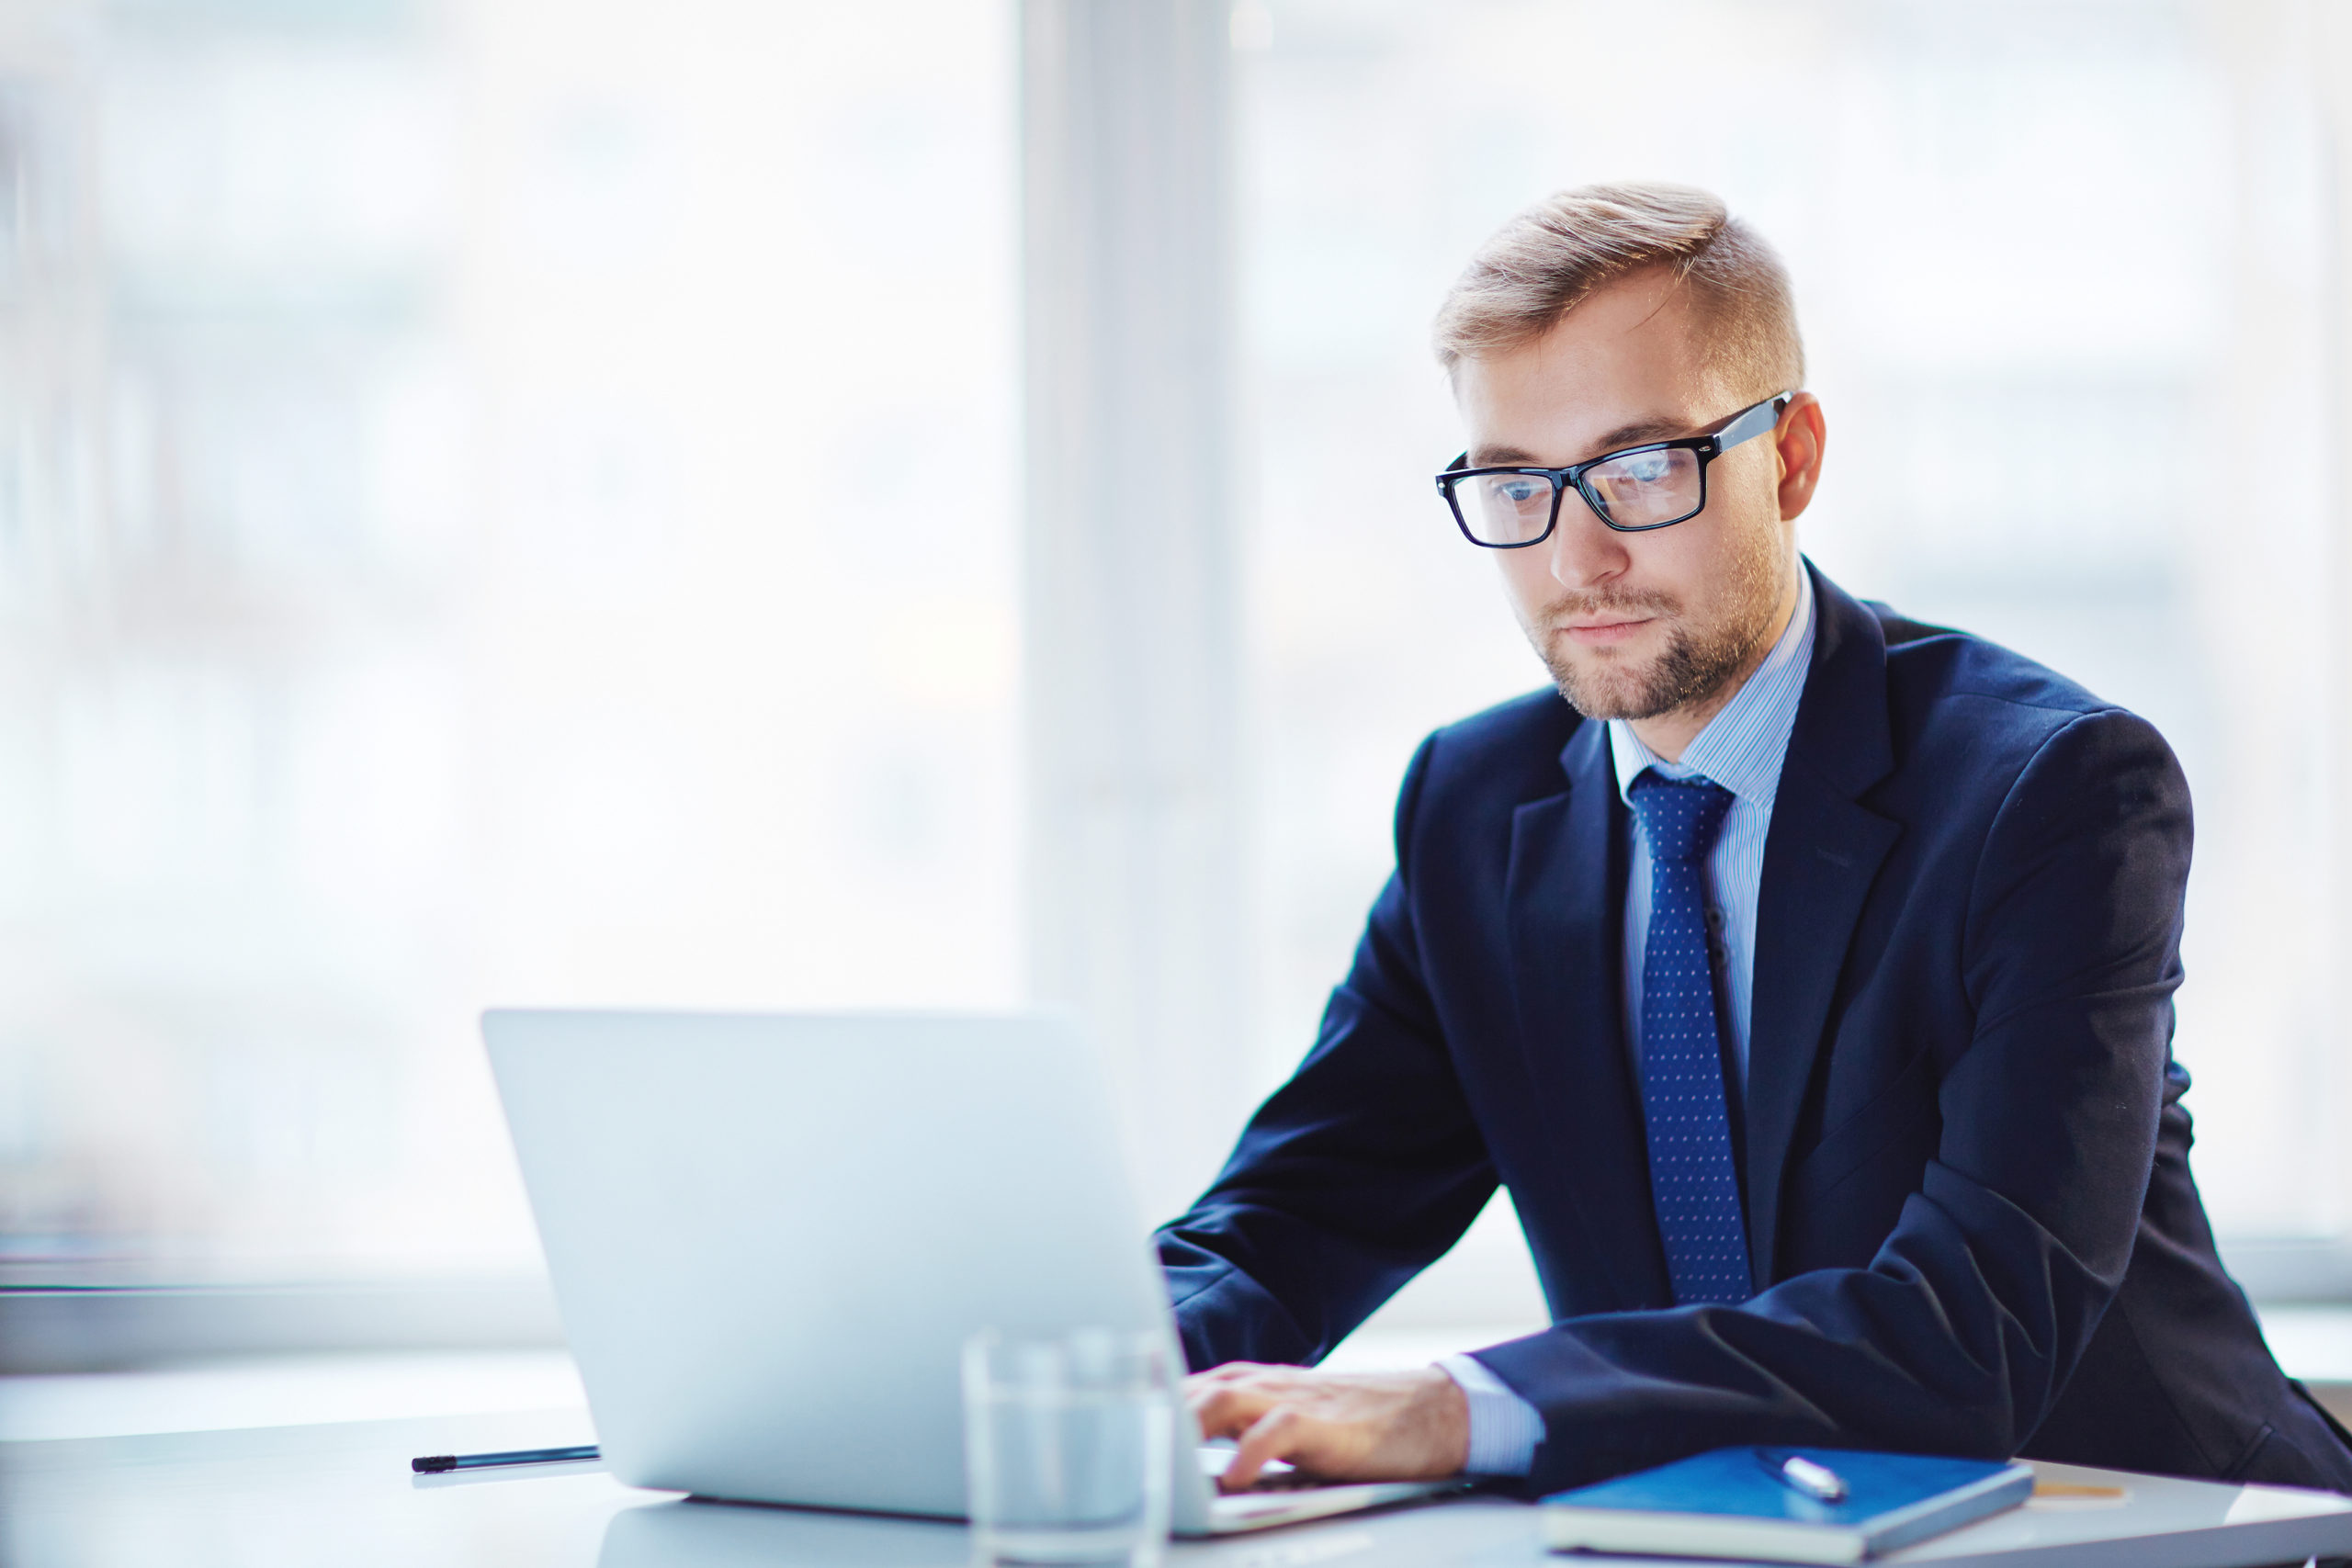 young-businessman-working-laptop-office-395012614